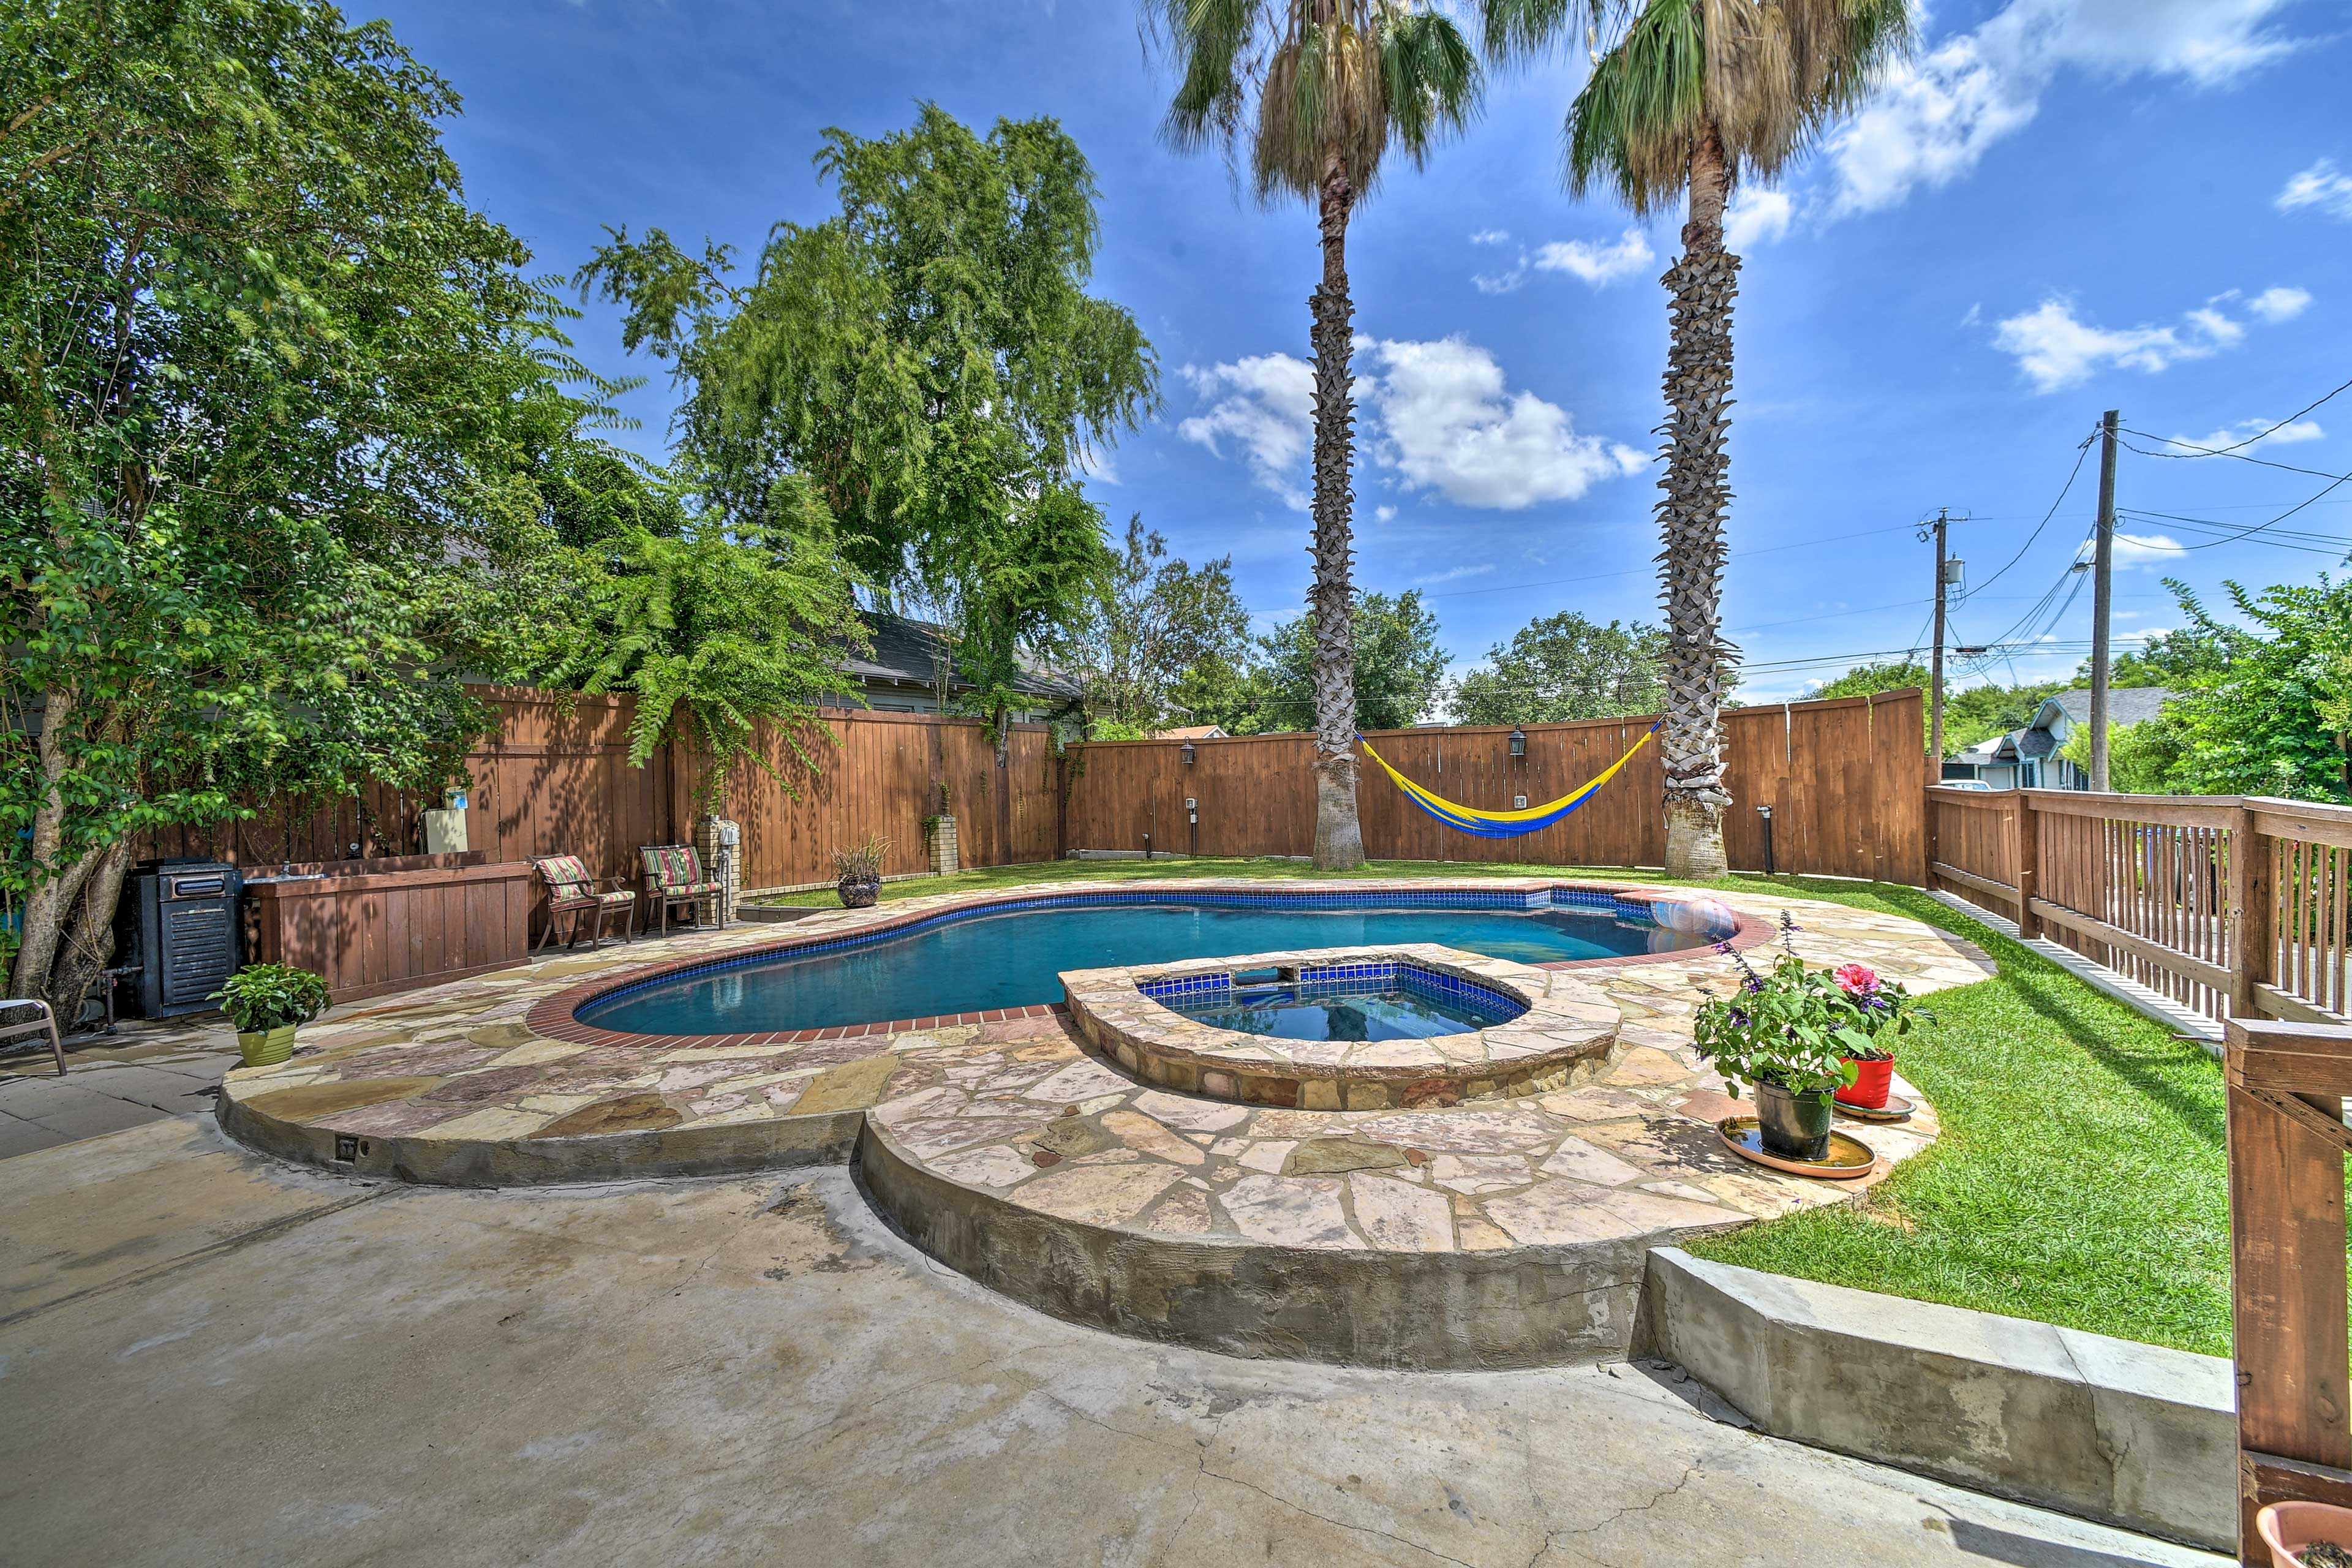 Soak up the sun out back in this outdoor oasis.